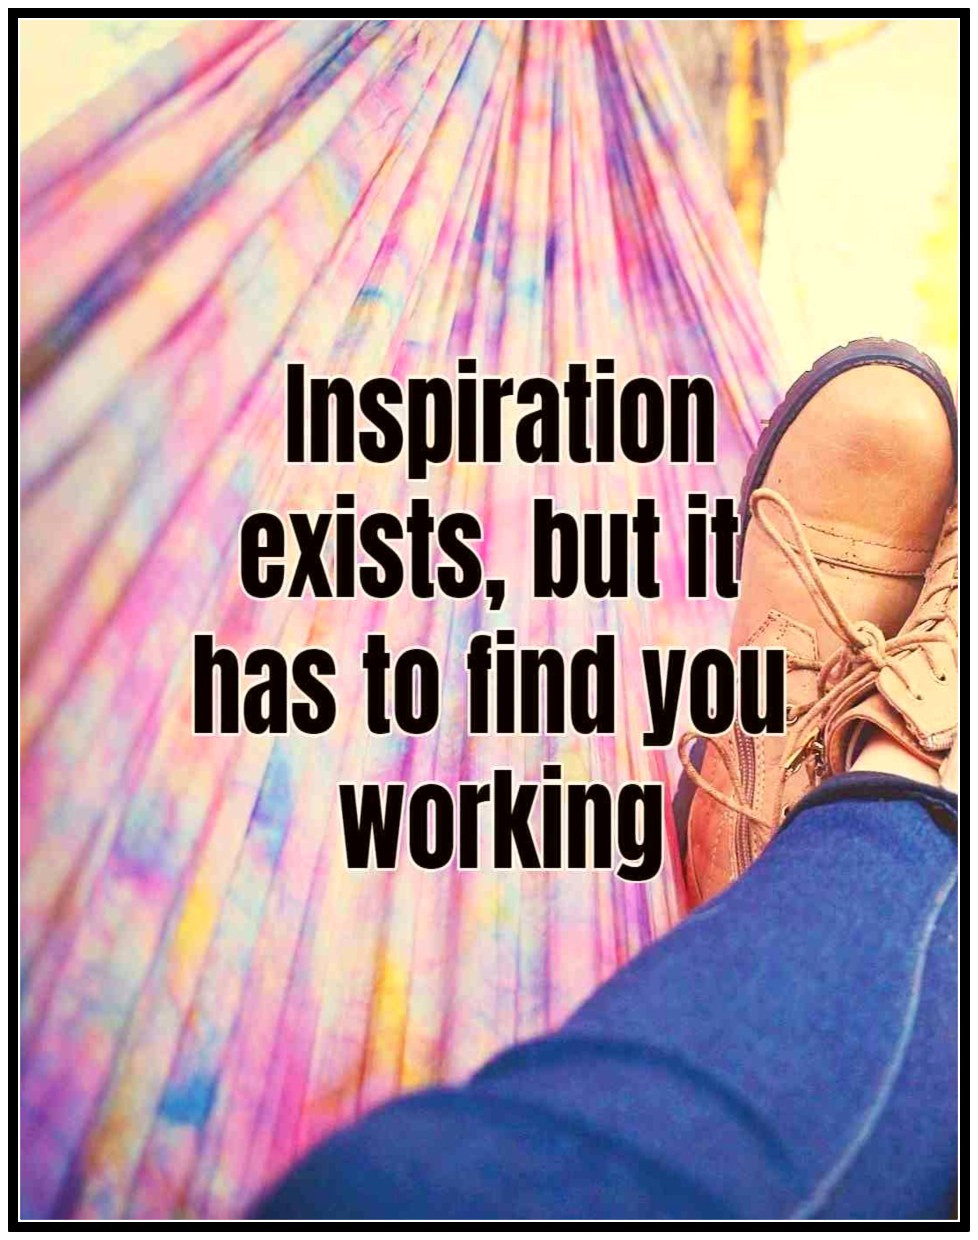 Inspiration exists, but it has to find you working. Pablo Picasso bekitschig